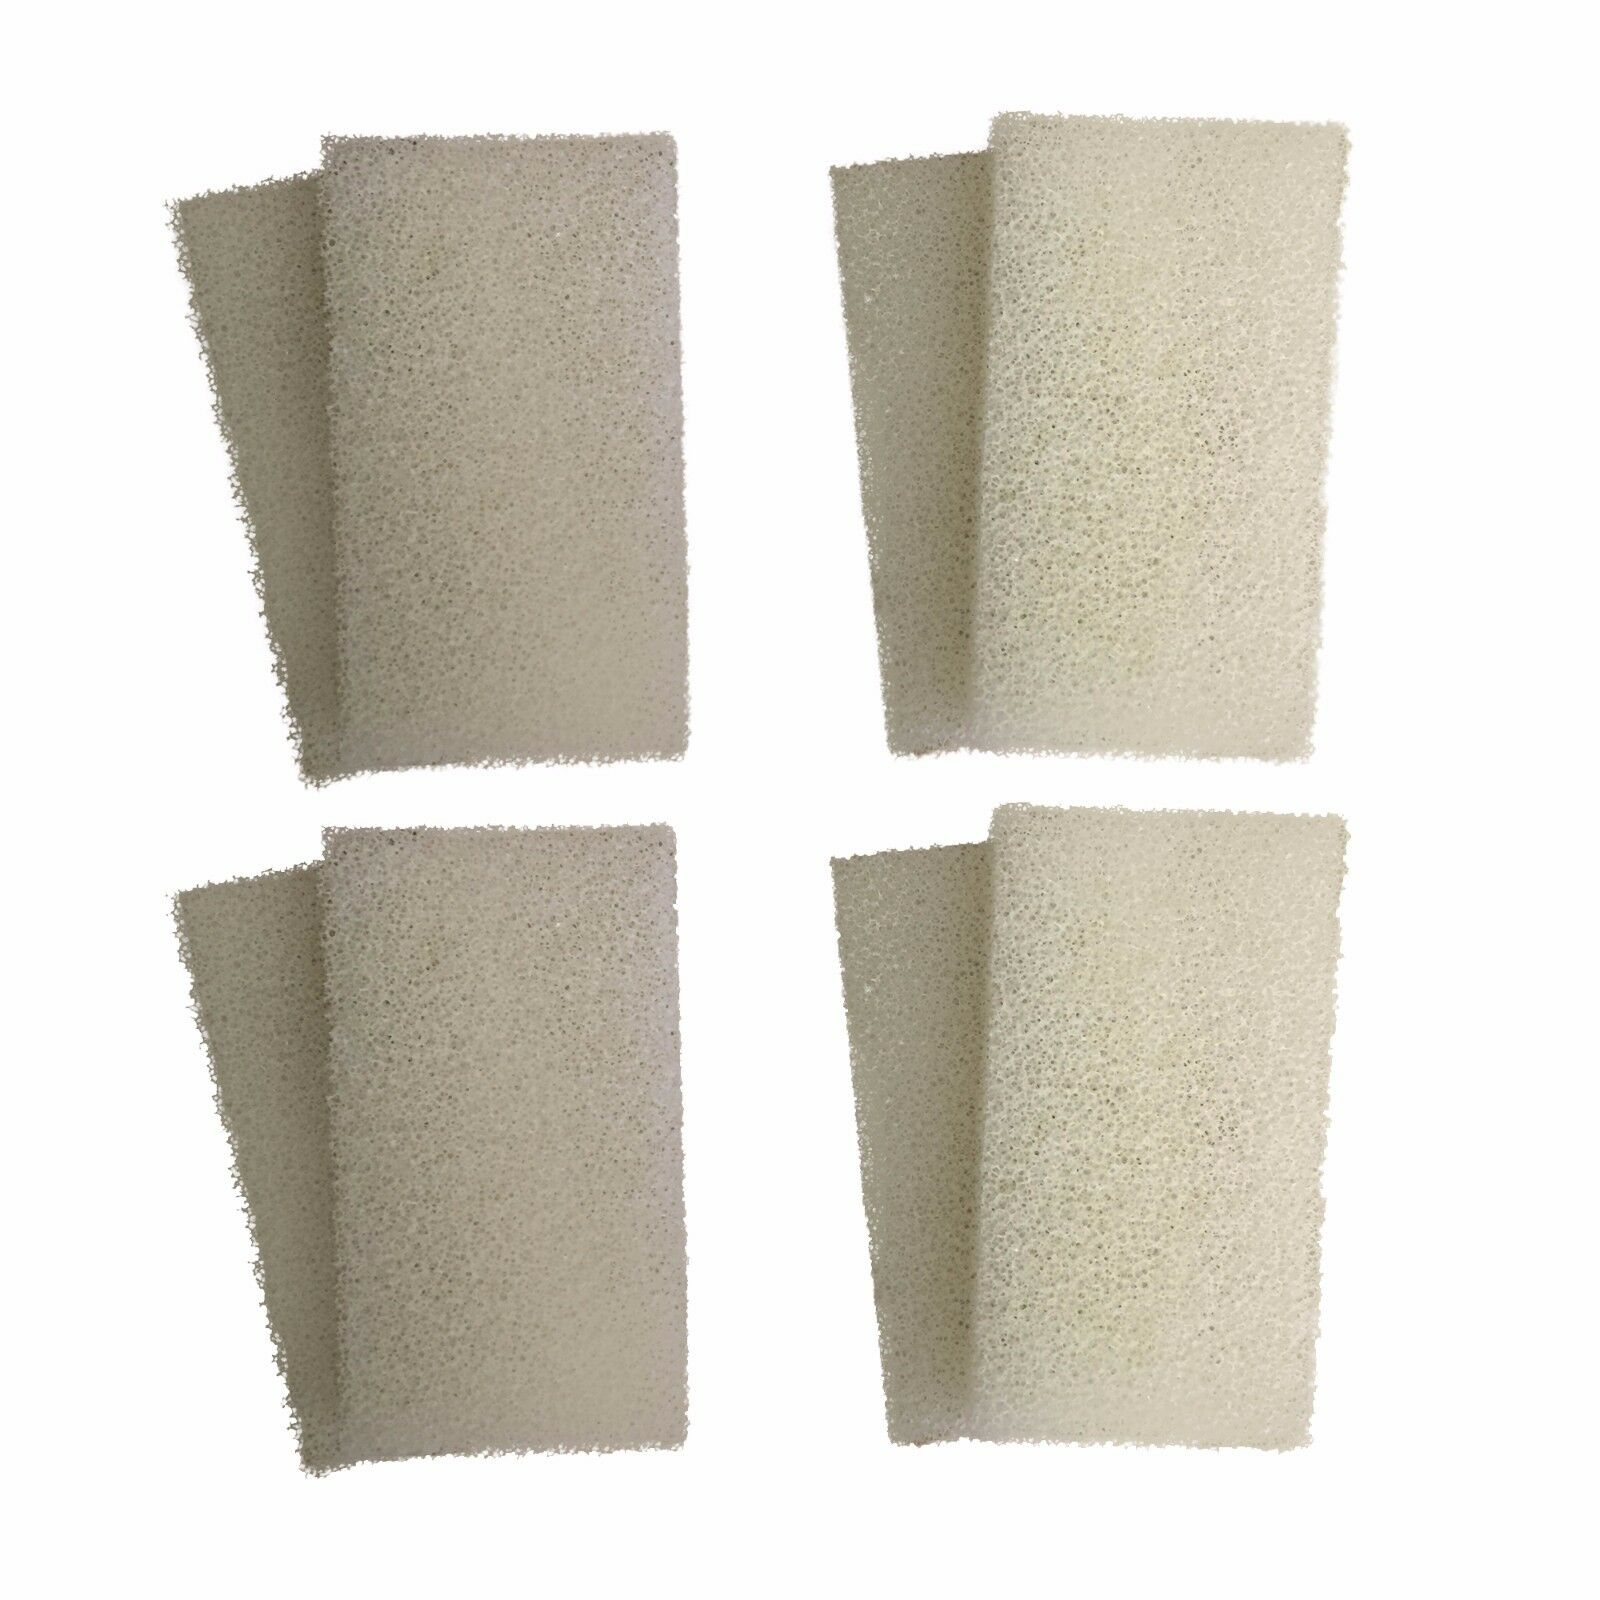 Finest-Filters 4 x Compatible Foam And 4 x Compatible Polycarbon Carbon Cartridges To Fit Fluval U3 Internal